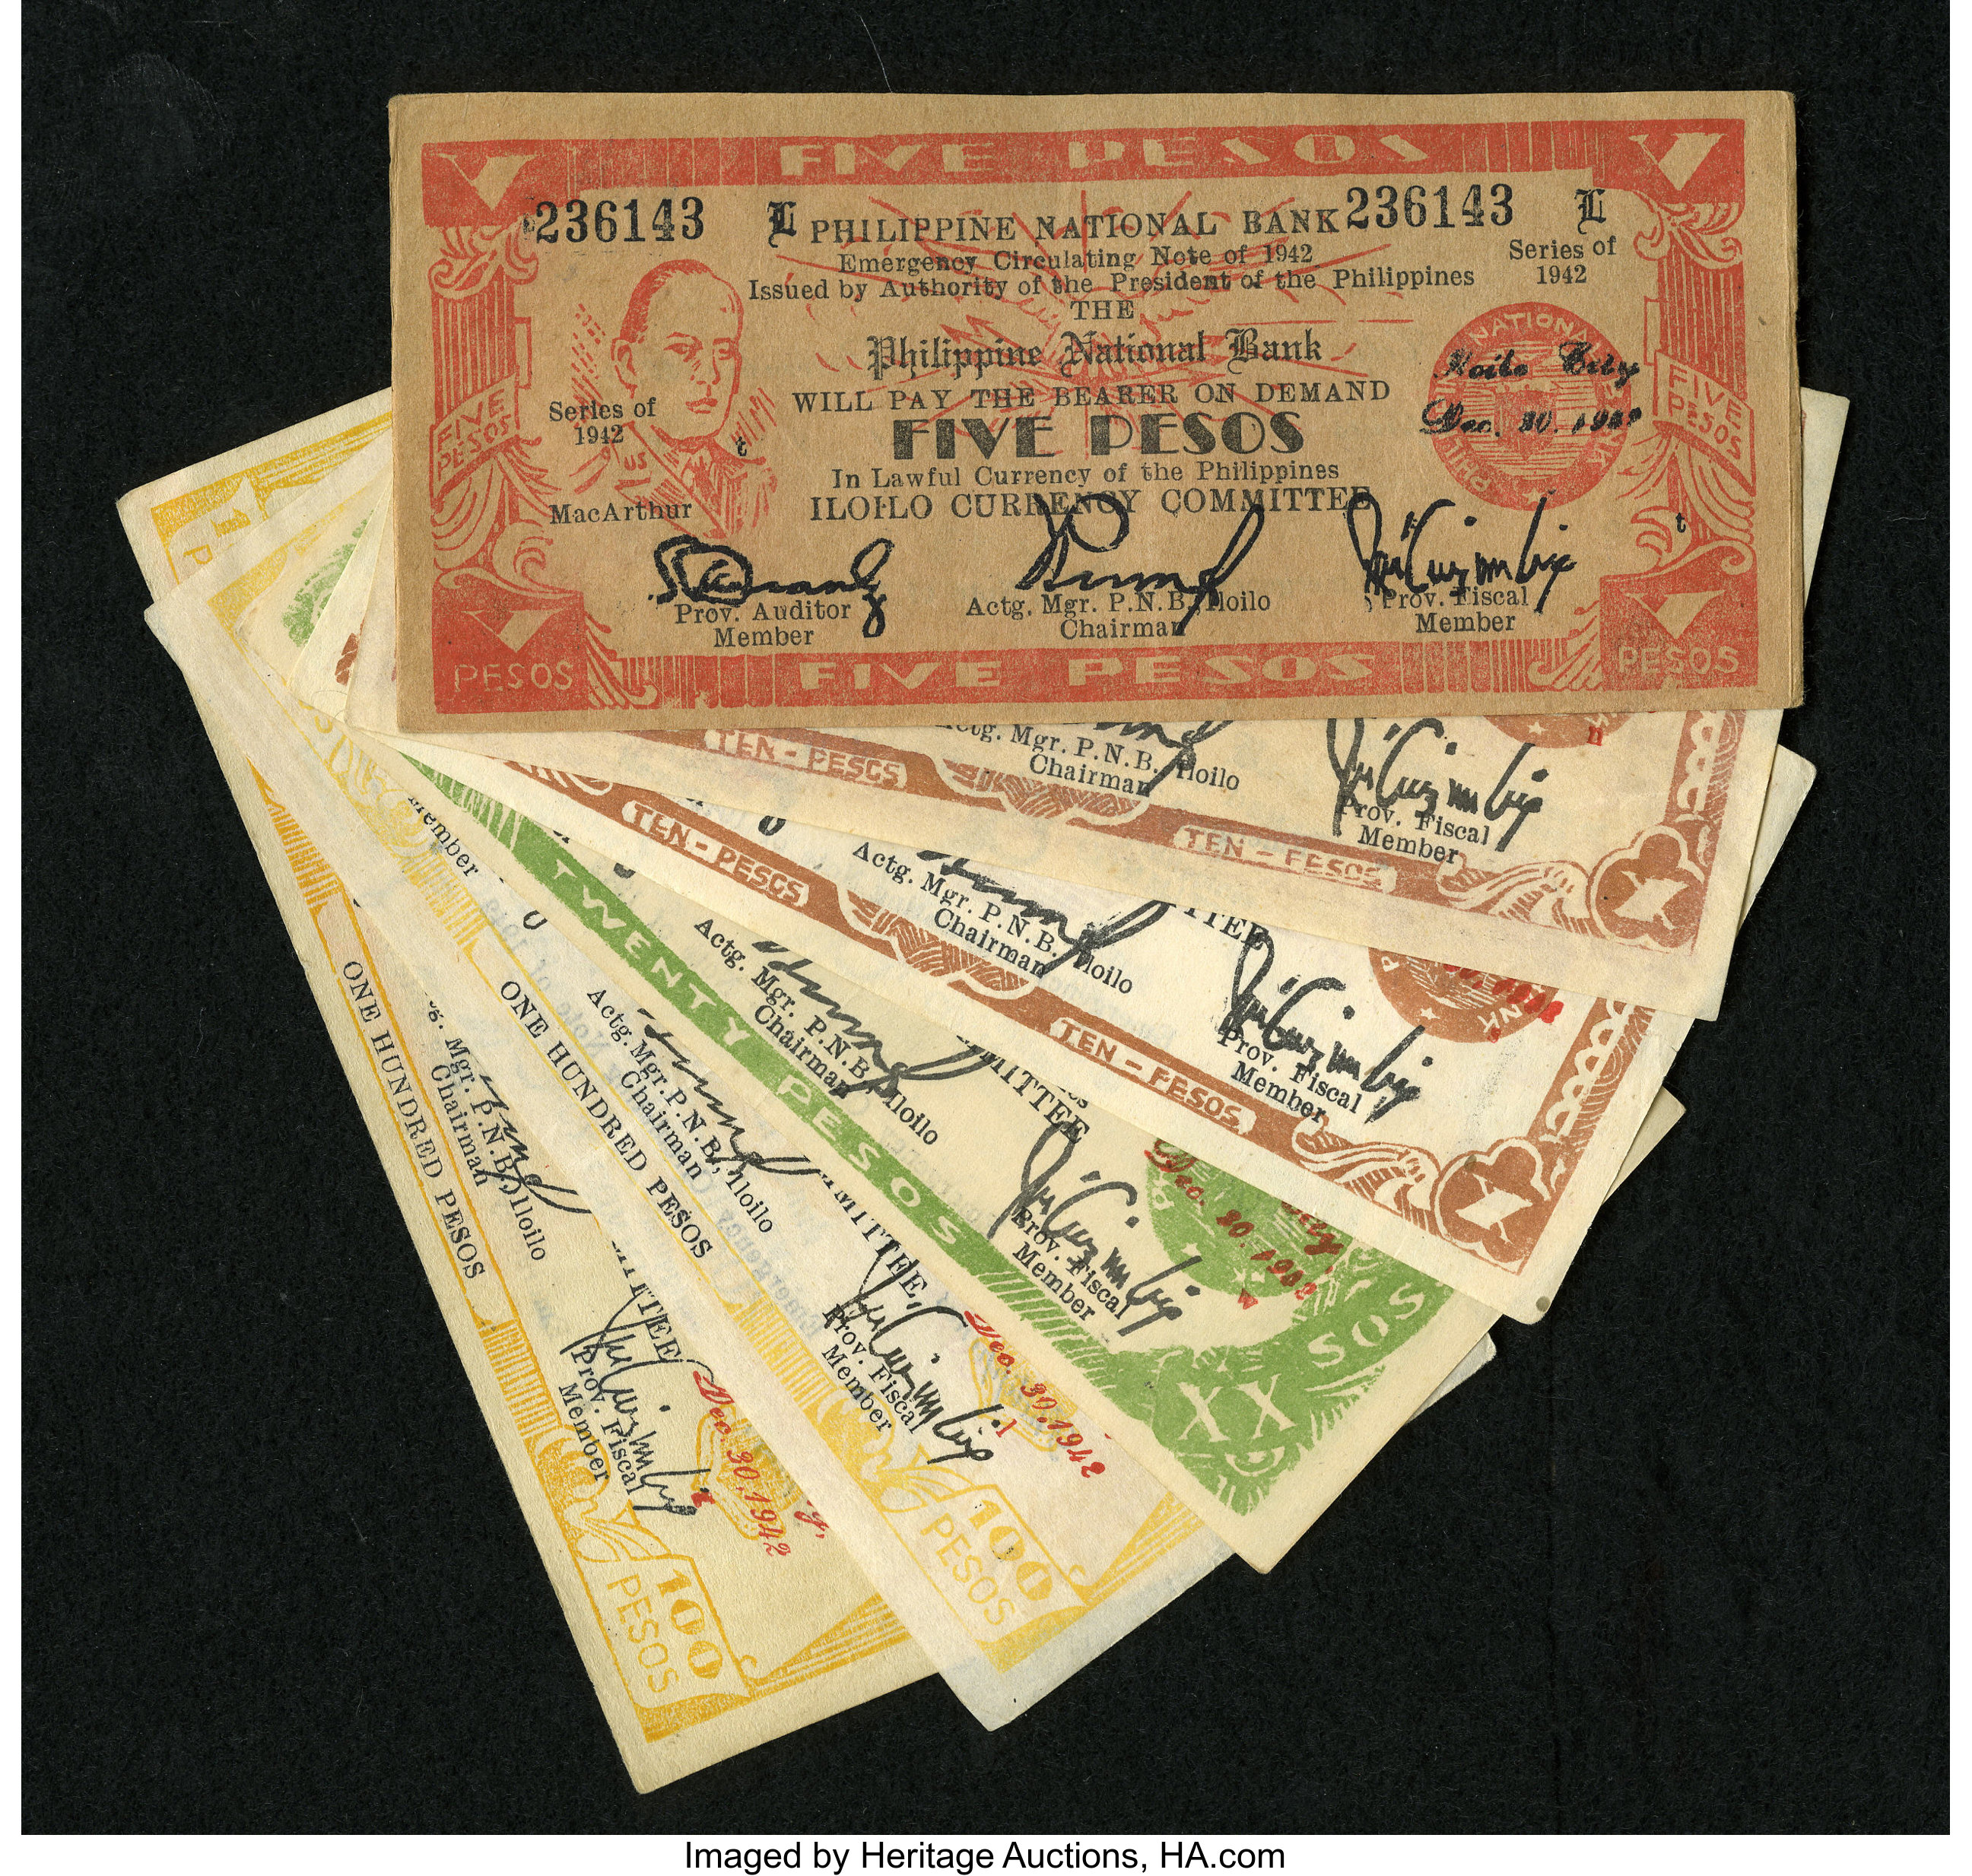 Philippines Philippine National Bank IIoilo Currency